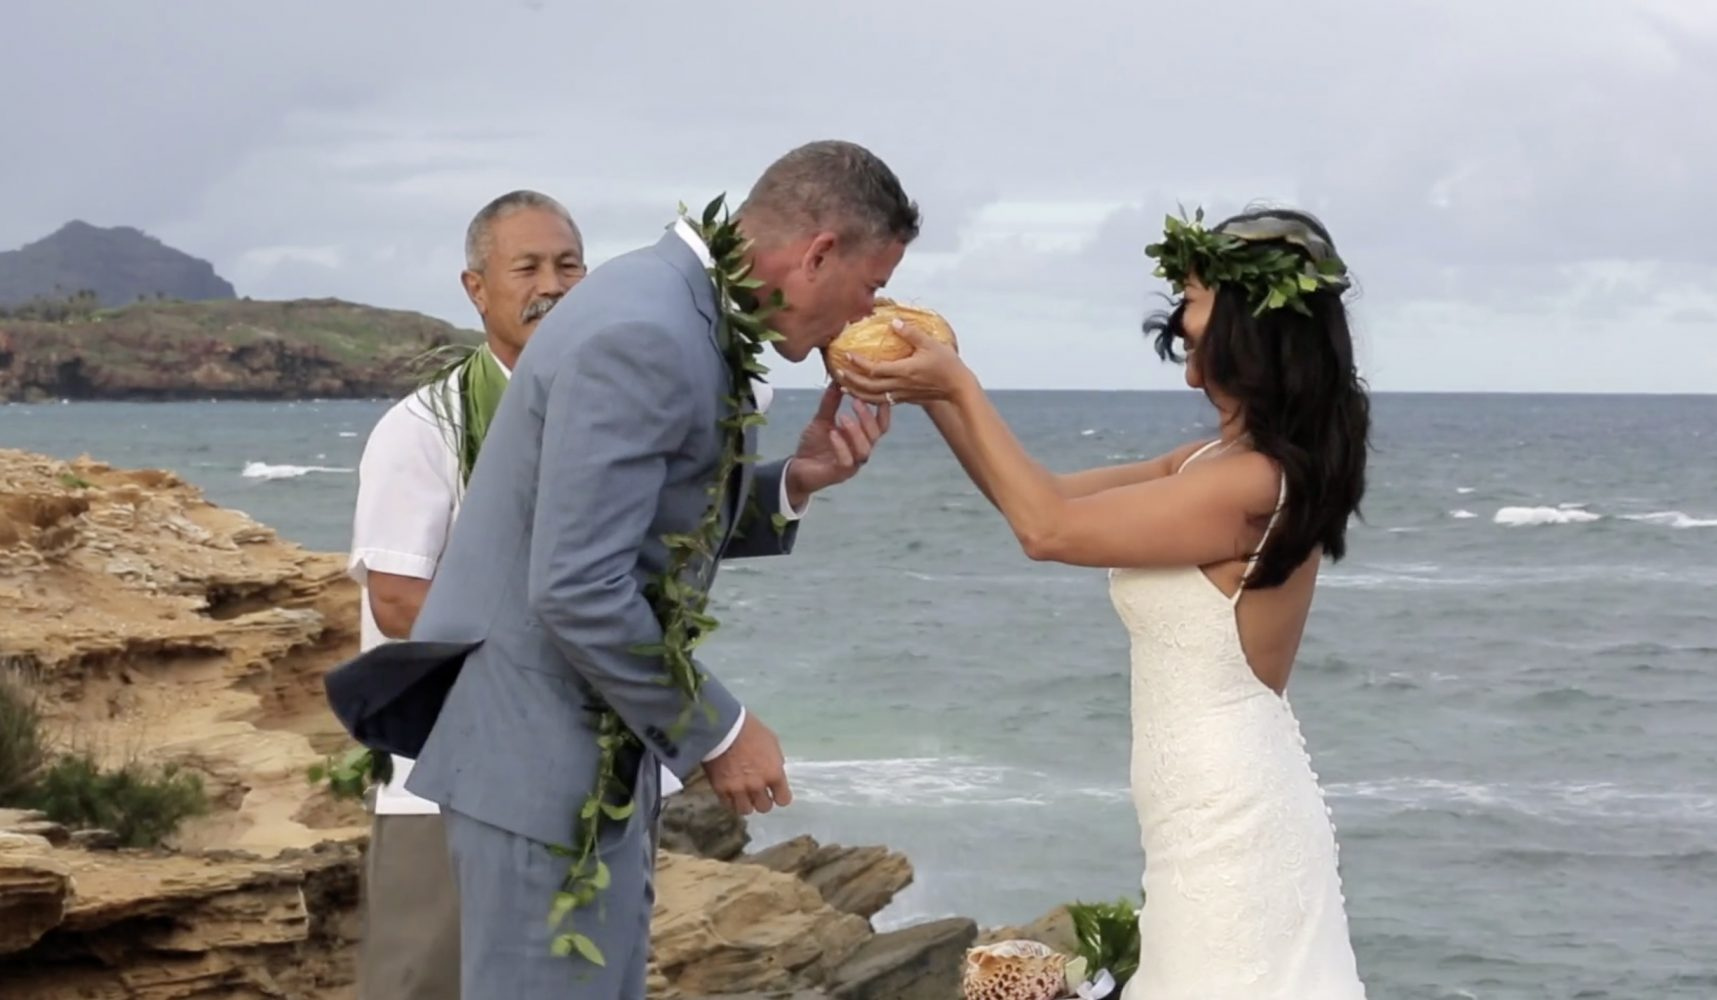 Wedding Officiant Speech Ideas: 10 Amazing Officiant Speeches That Will Seriously Inspire You